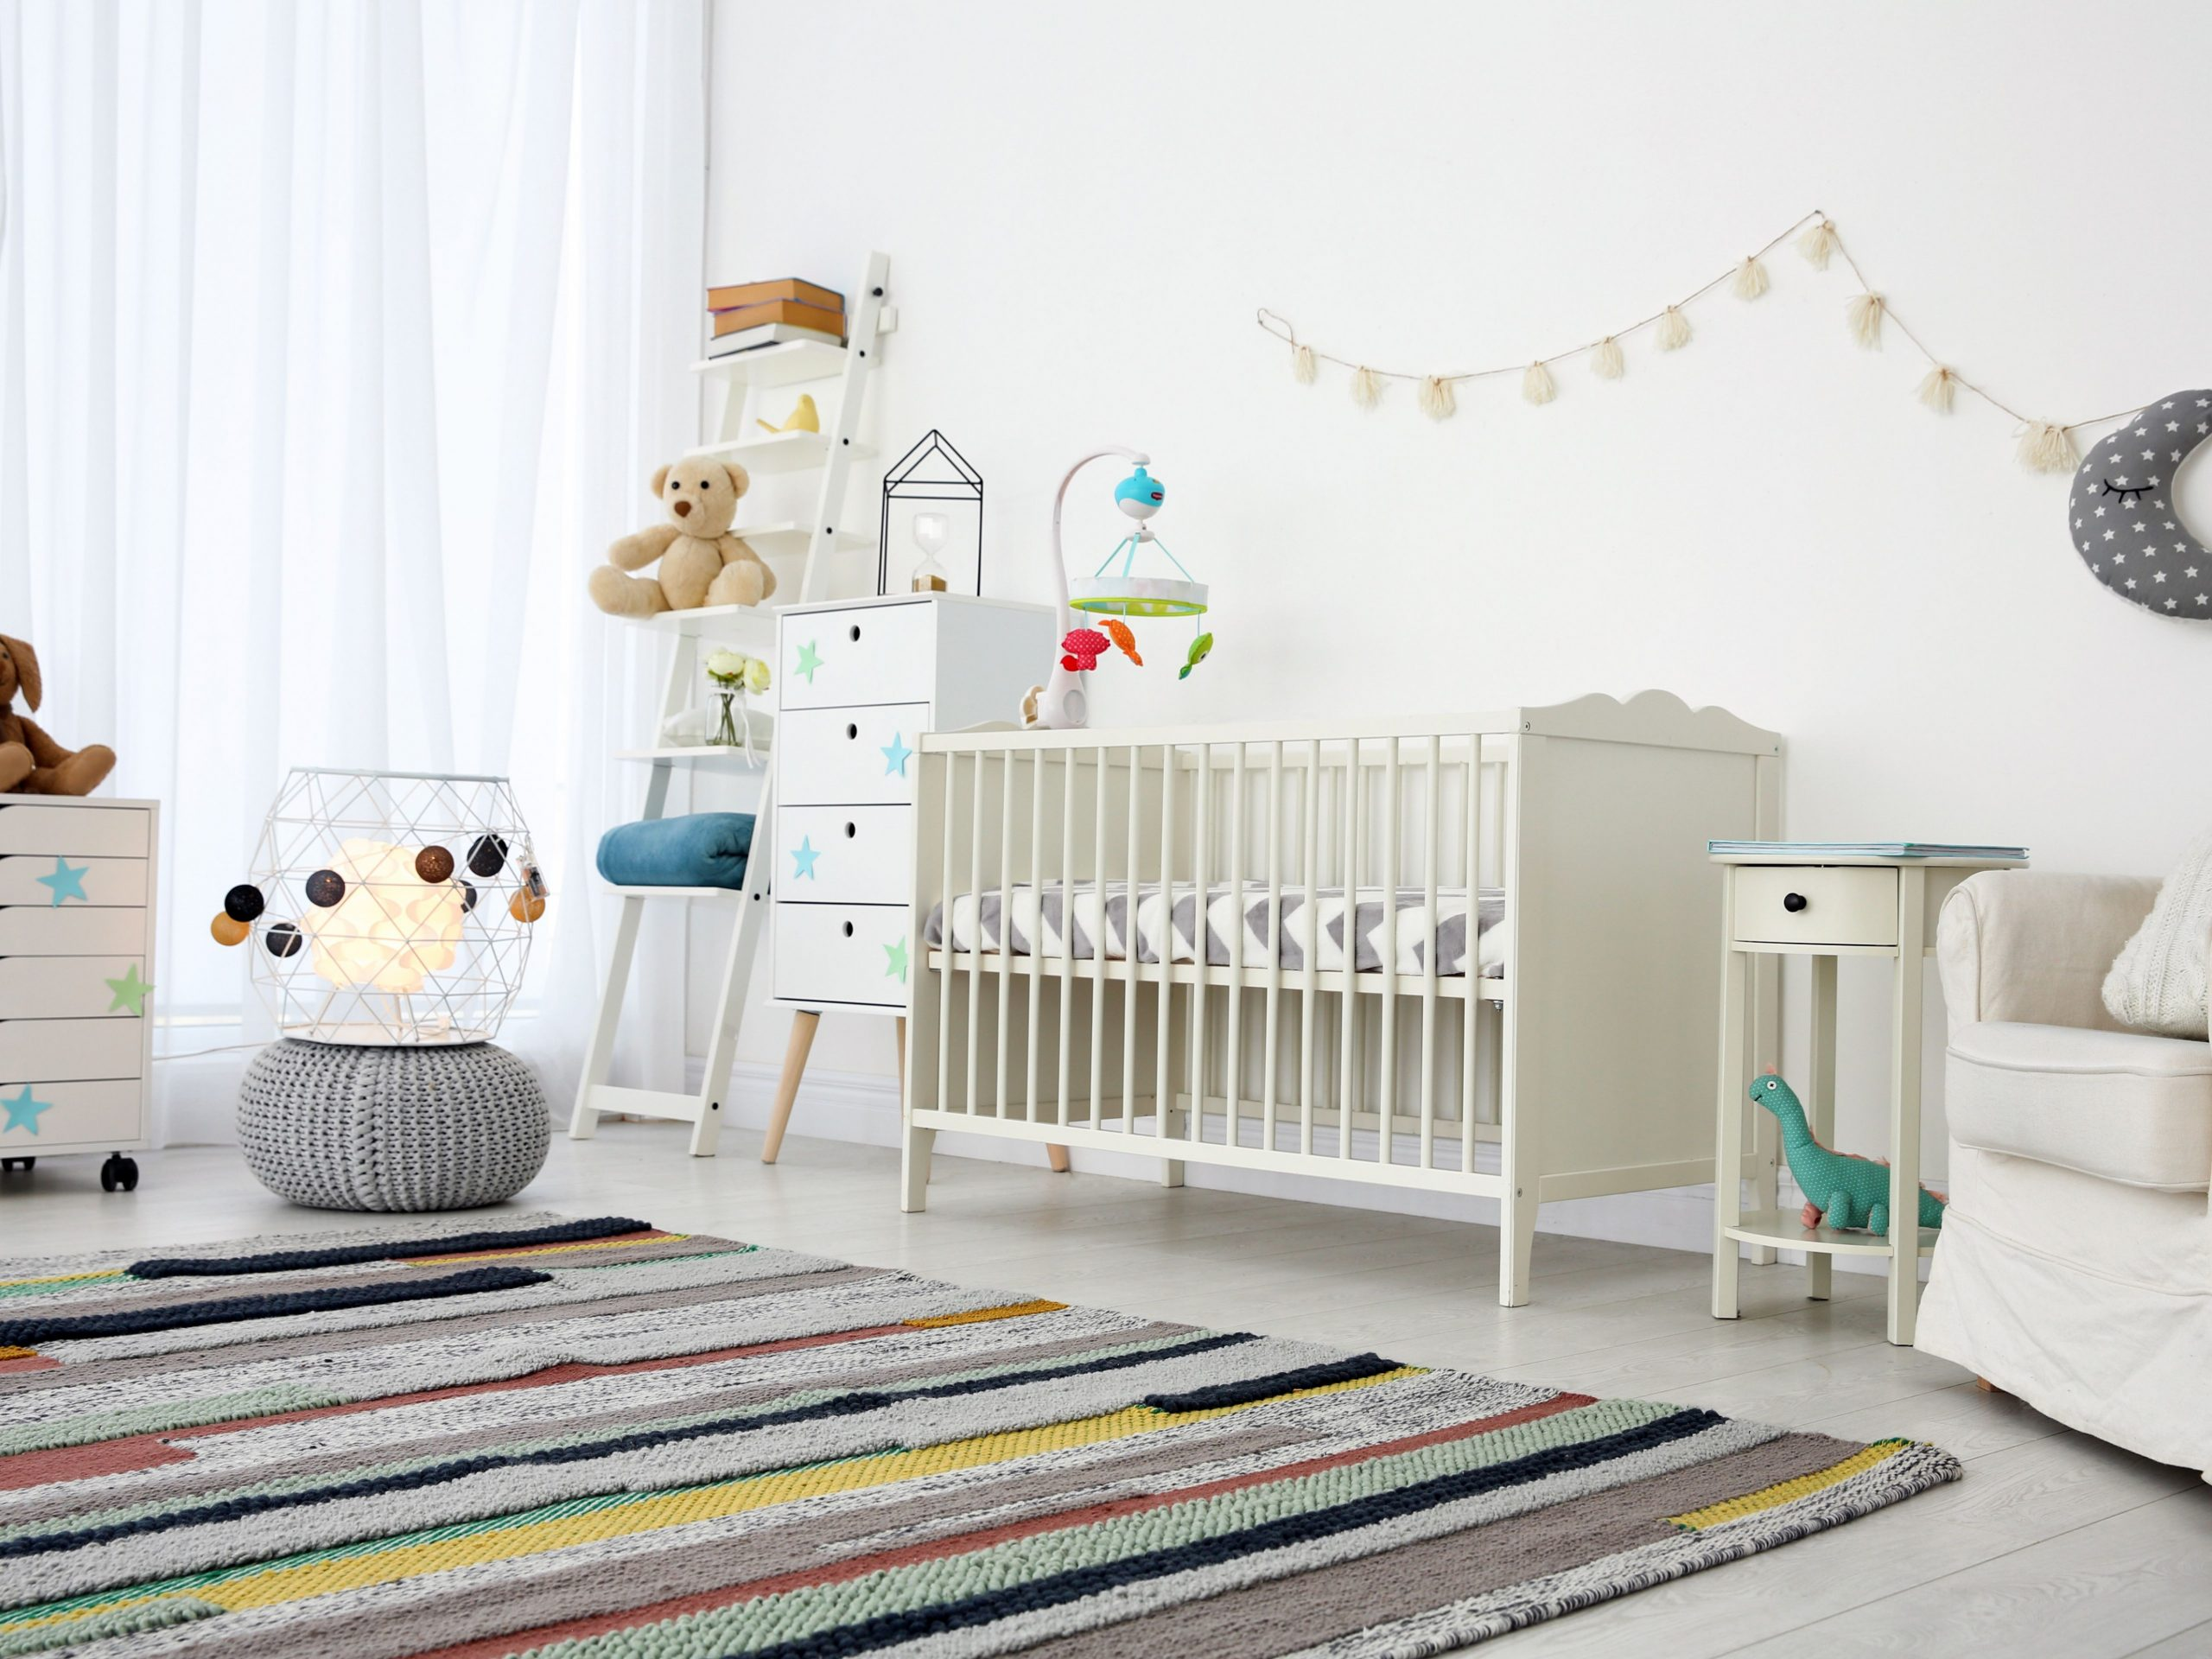 How to Choose a Rug for the Nursery - Baby Room Rugs